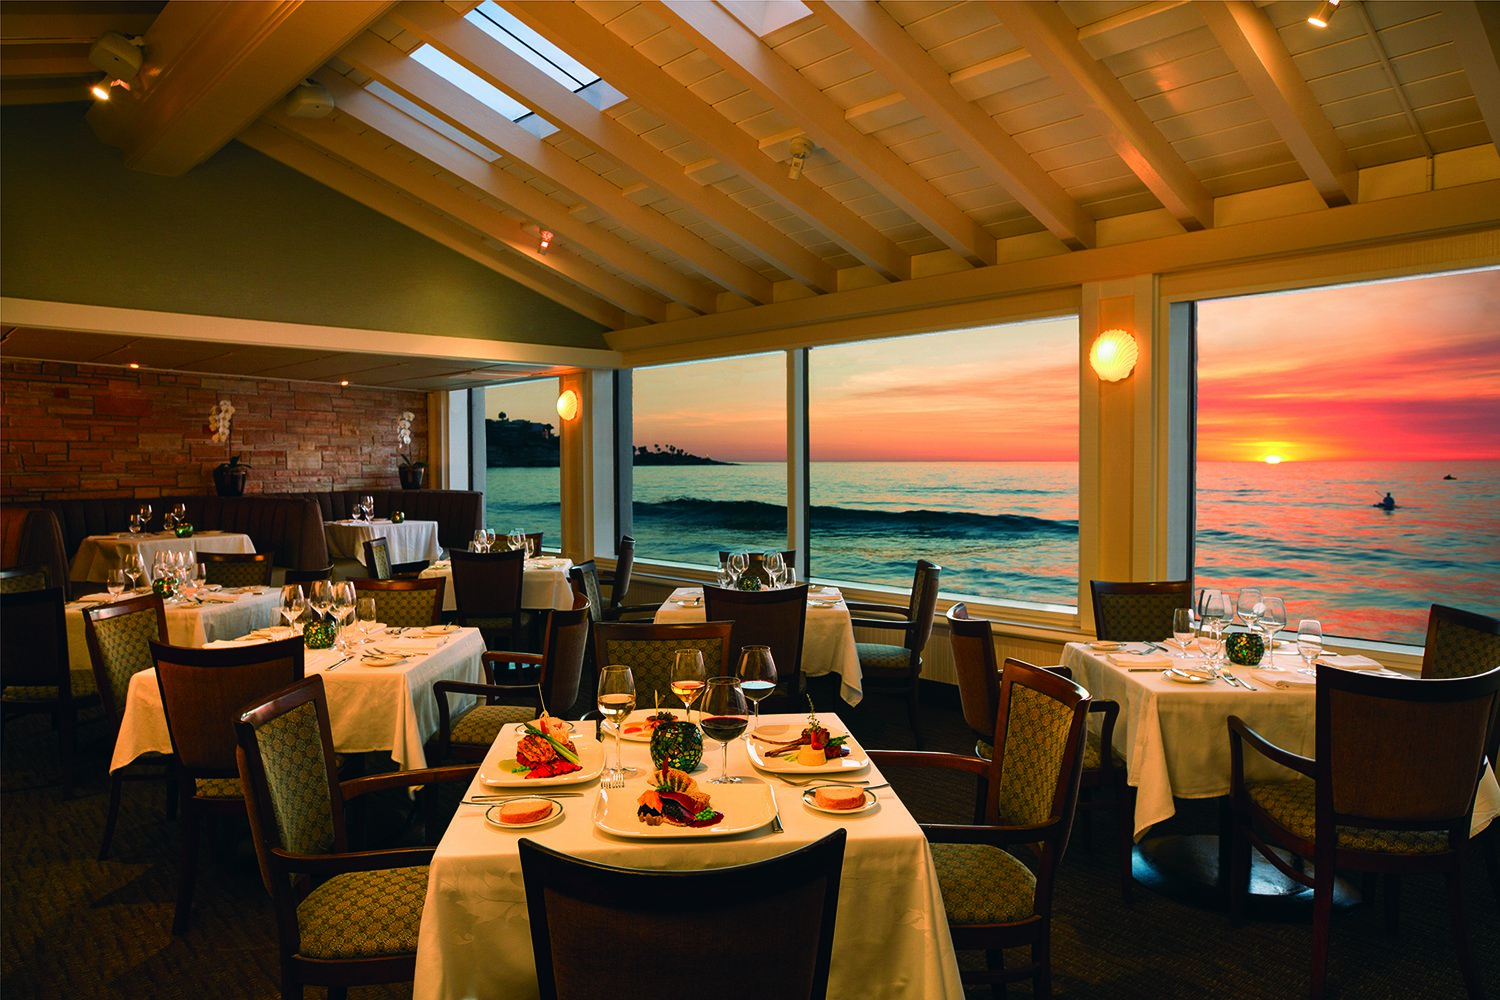 Best La Jolla restaurants: The Marine Room